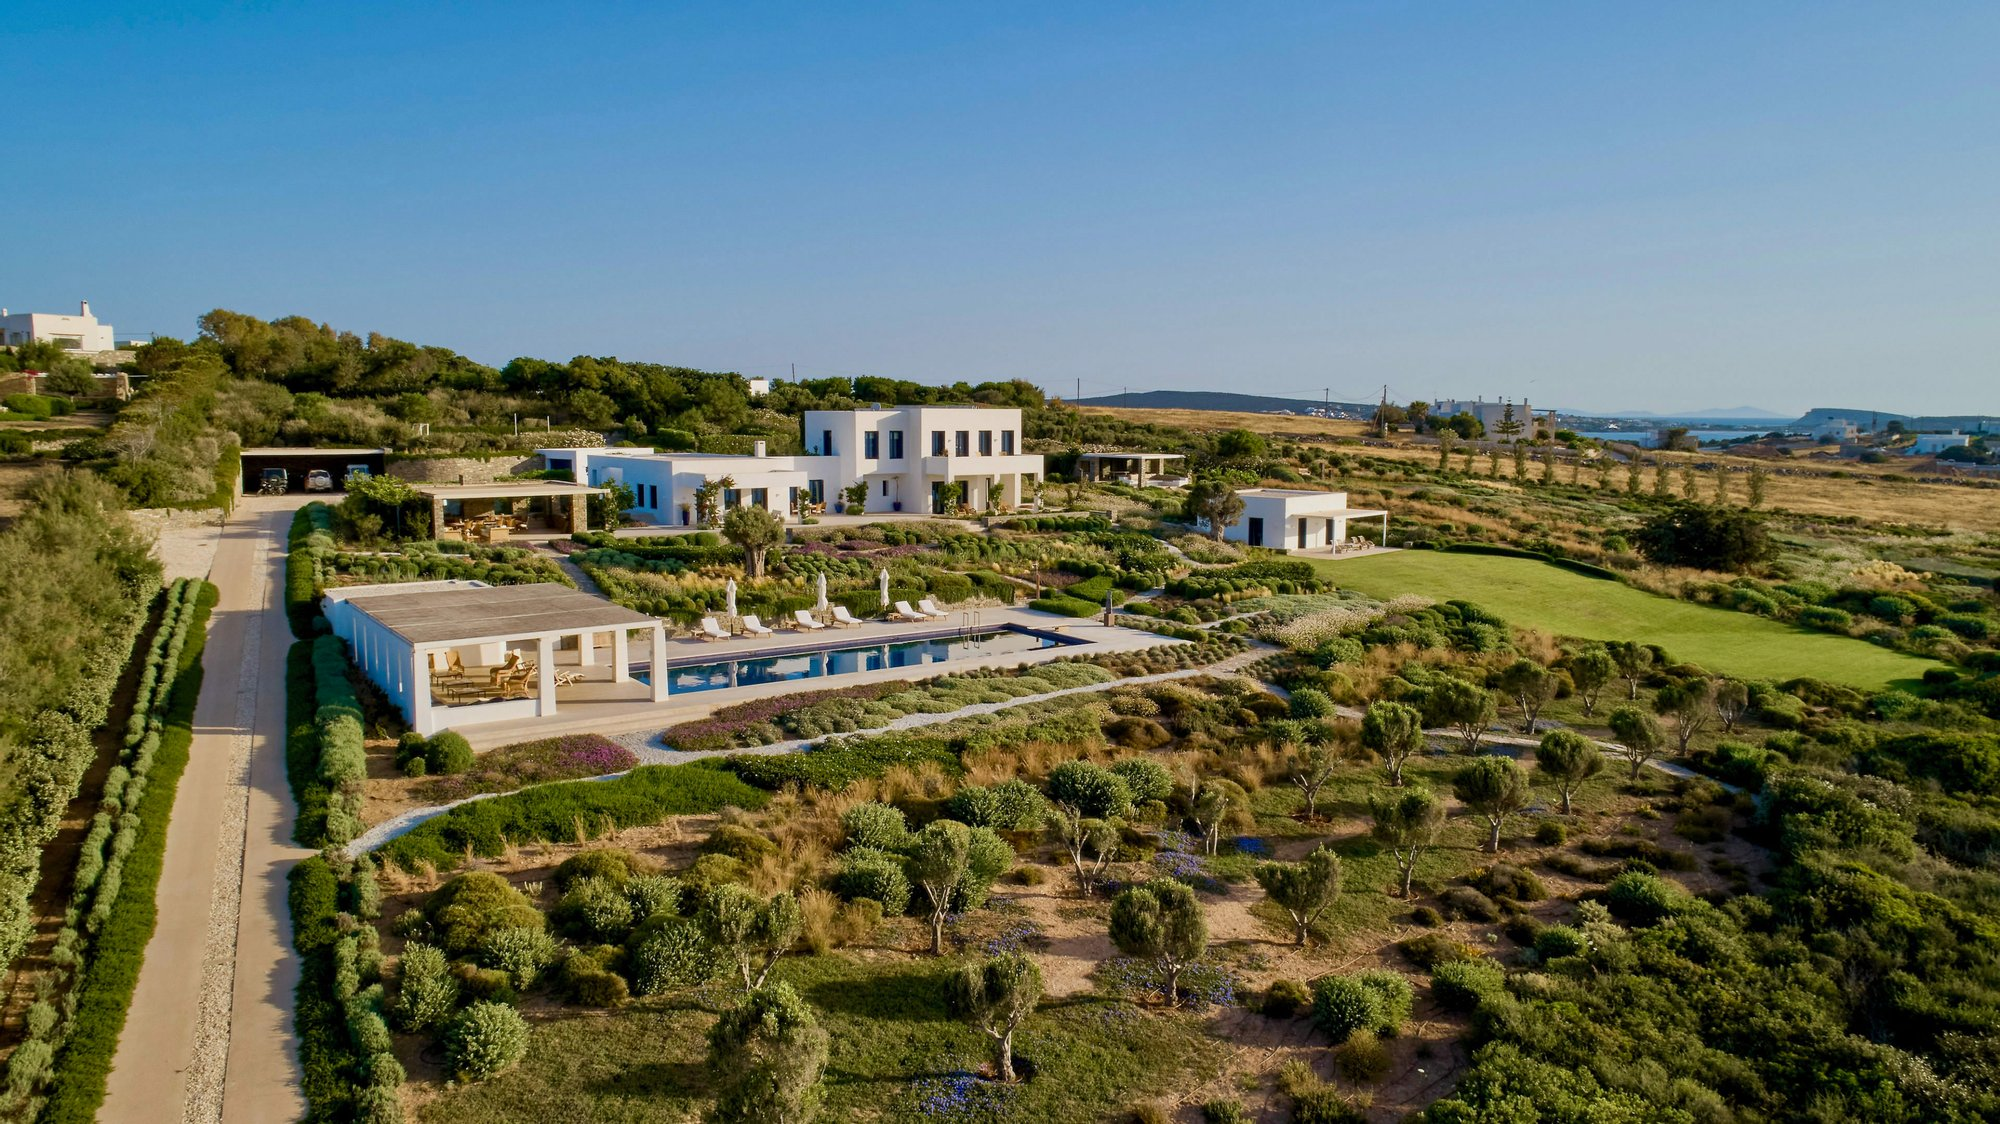 House in Paros, Decentralized Administration of the Aegean, Greece